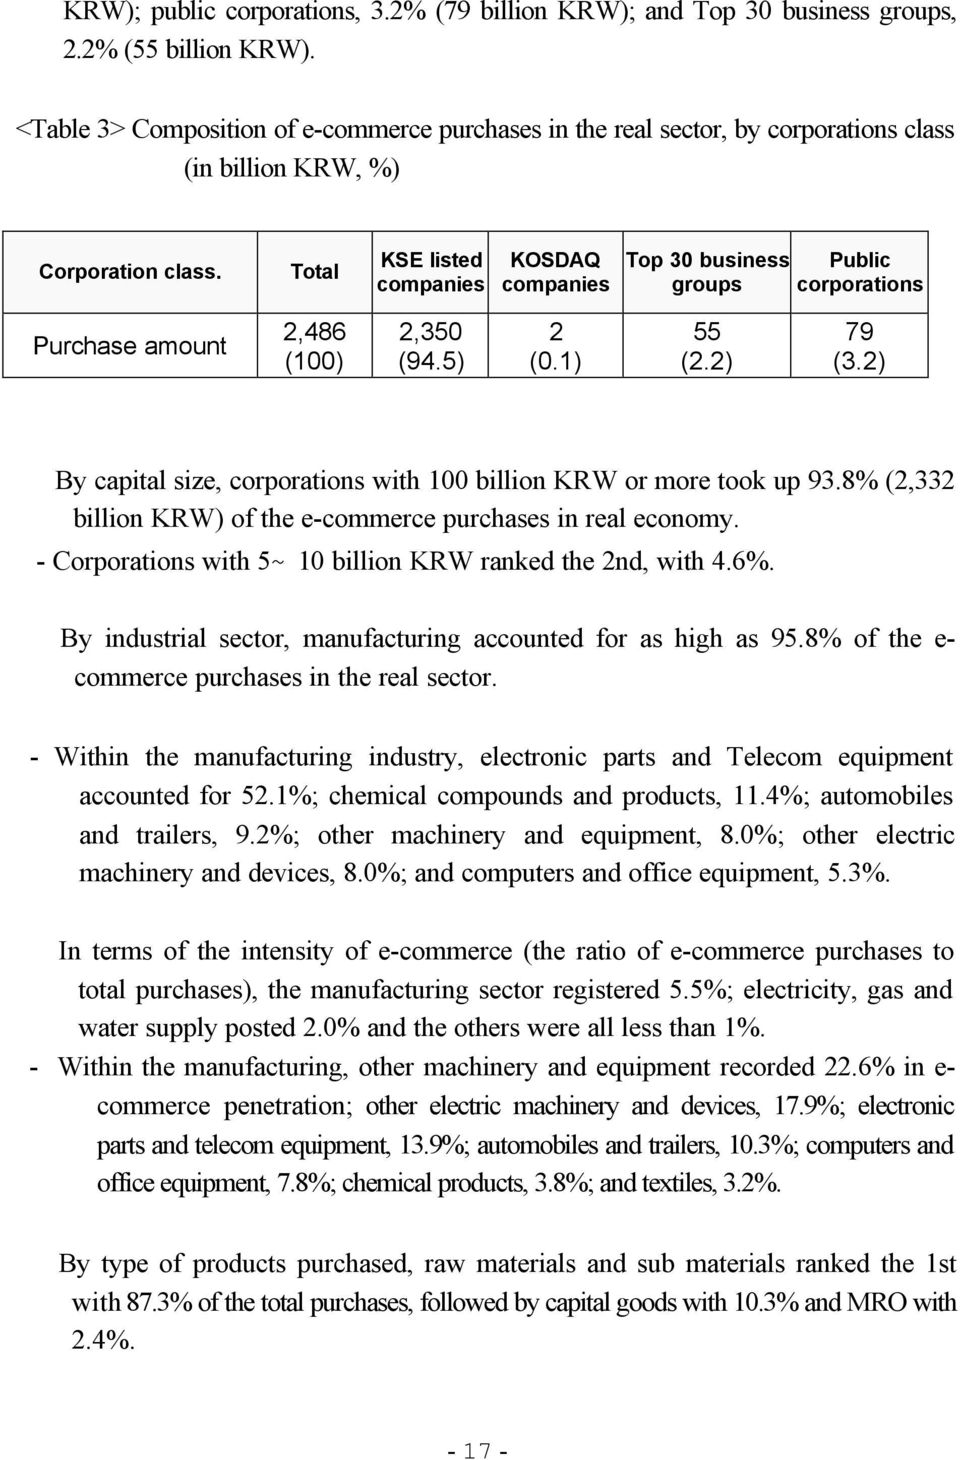 Total KSE listed companies KOSDAQ companies Top 30 business groups Public corporations Purchase amount 2,486 (100) 2,350 (94.5) 2 (0.1) 55 (2.2) 79 (3.